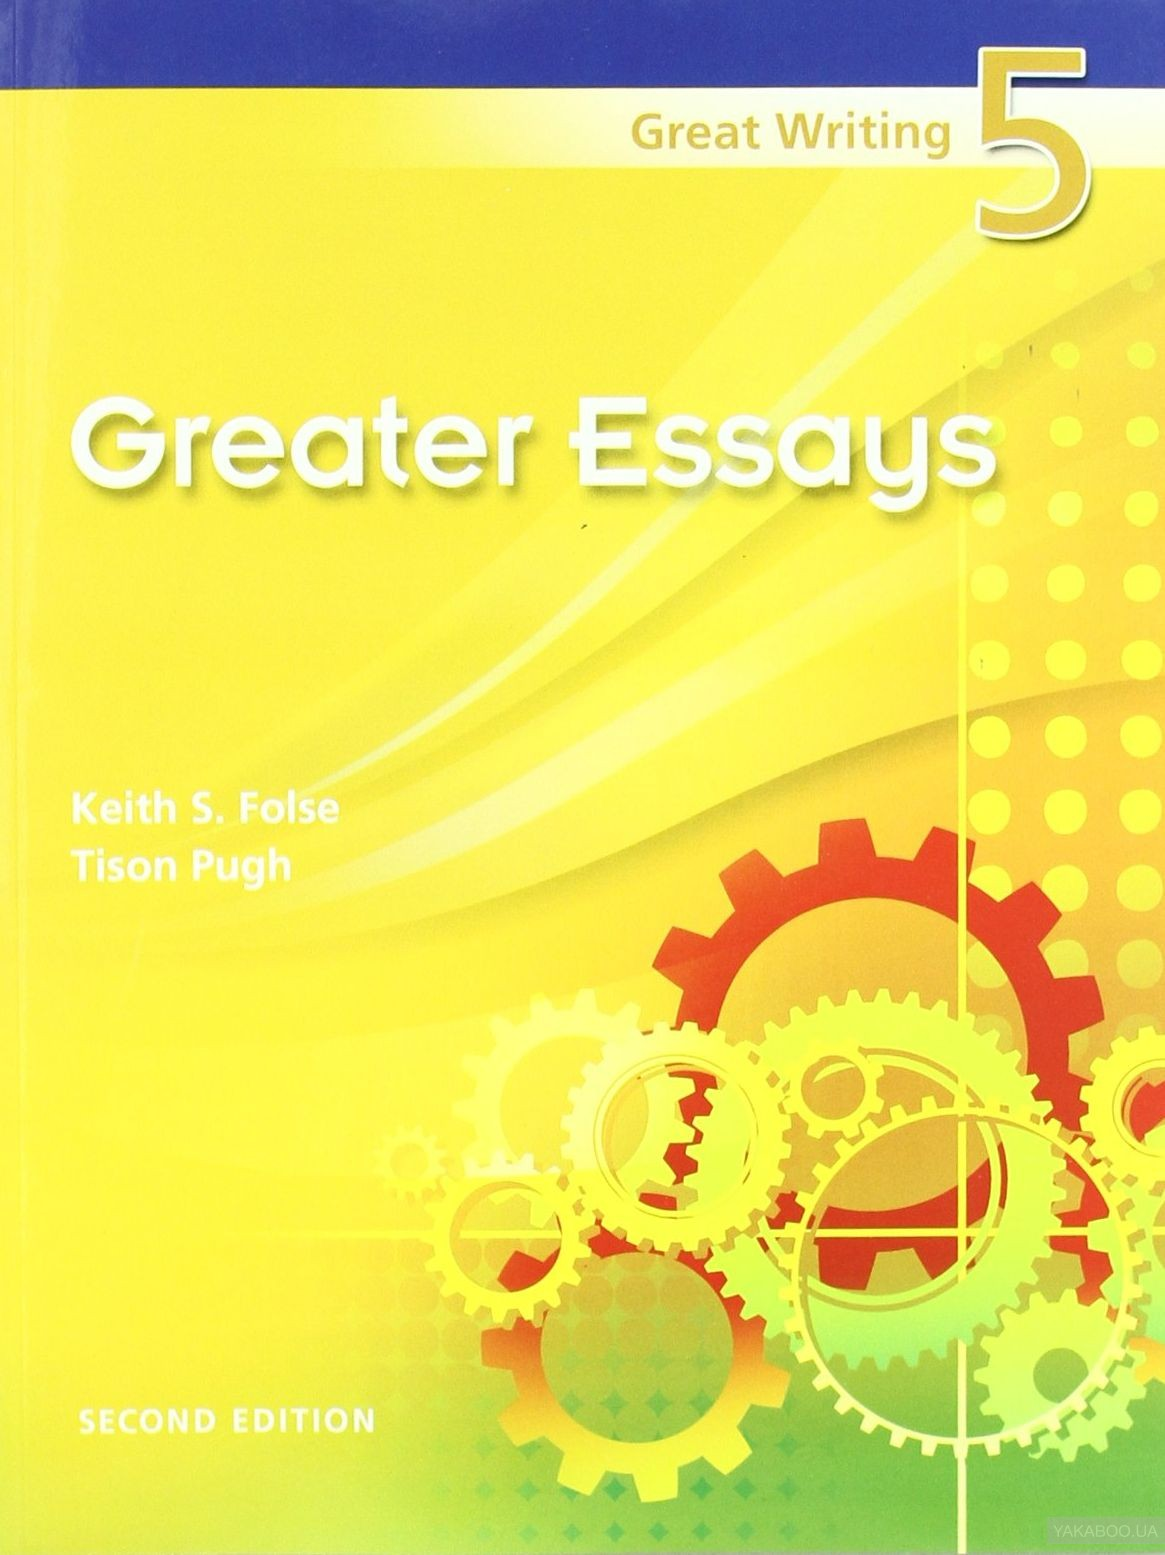 great essays folse pugh The great writing series uses clear explanations and extensive practical activities to help students write great sentences, paragraphs, and essays.